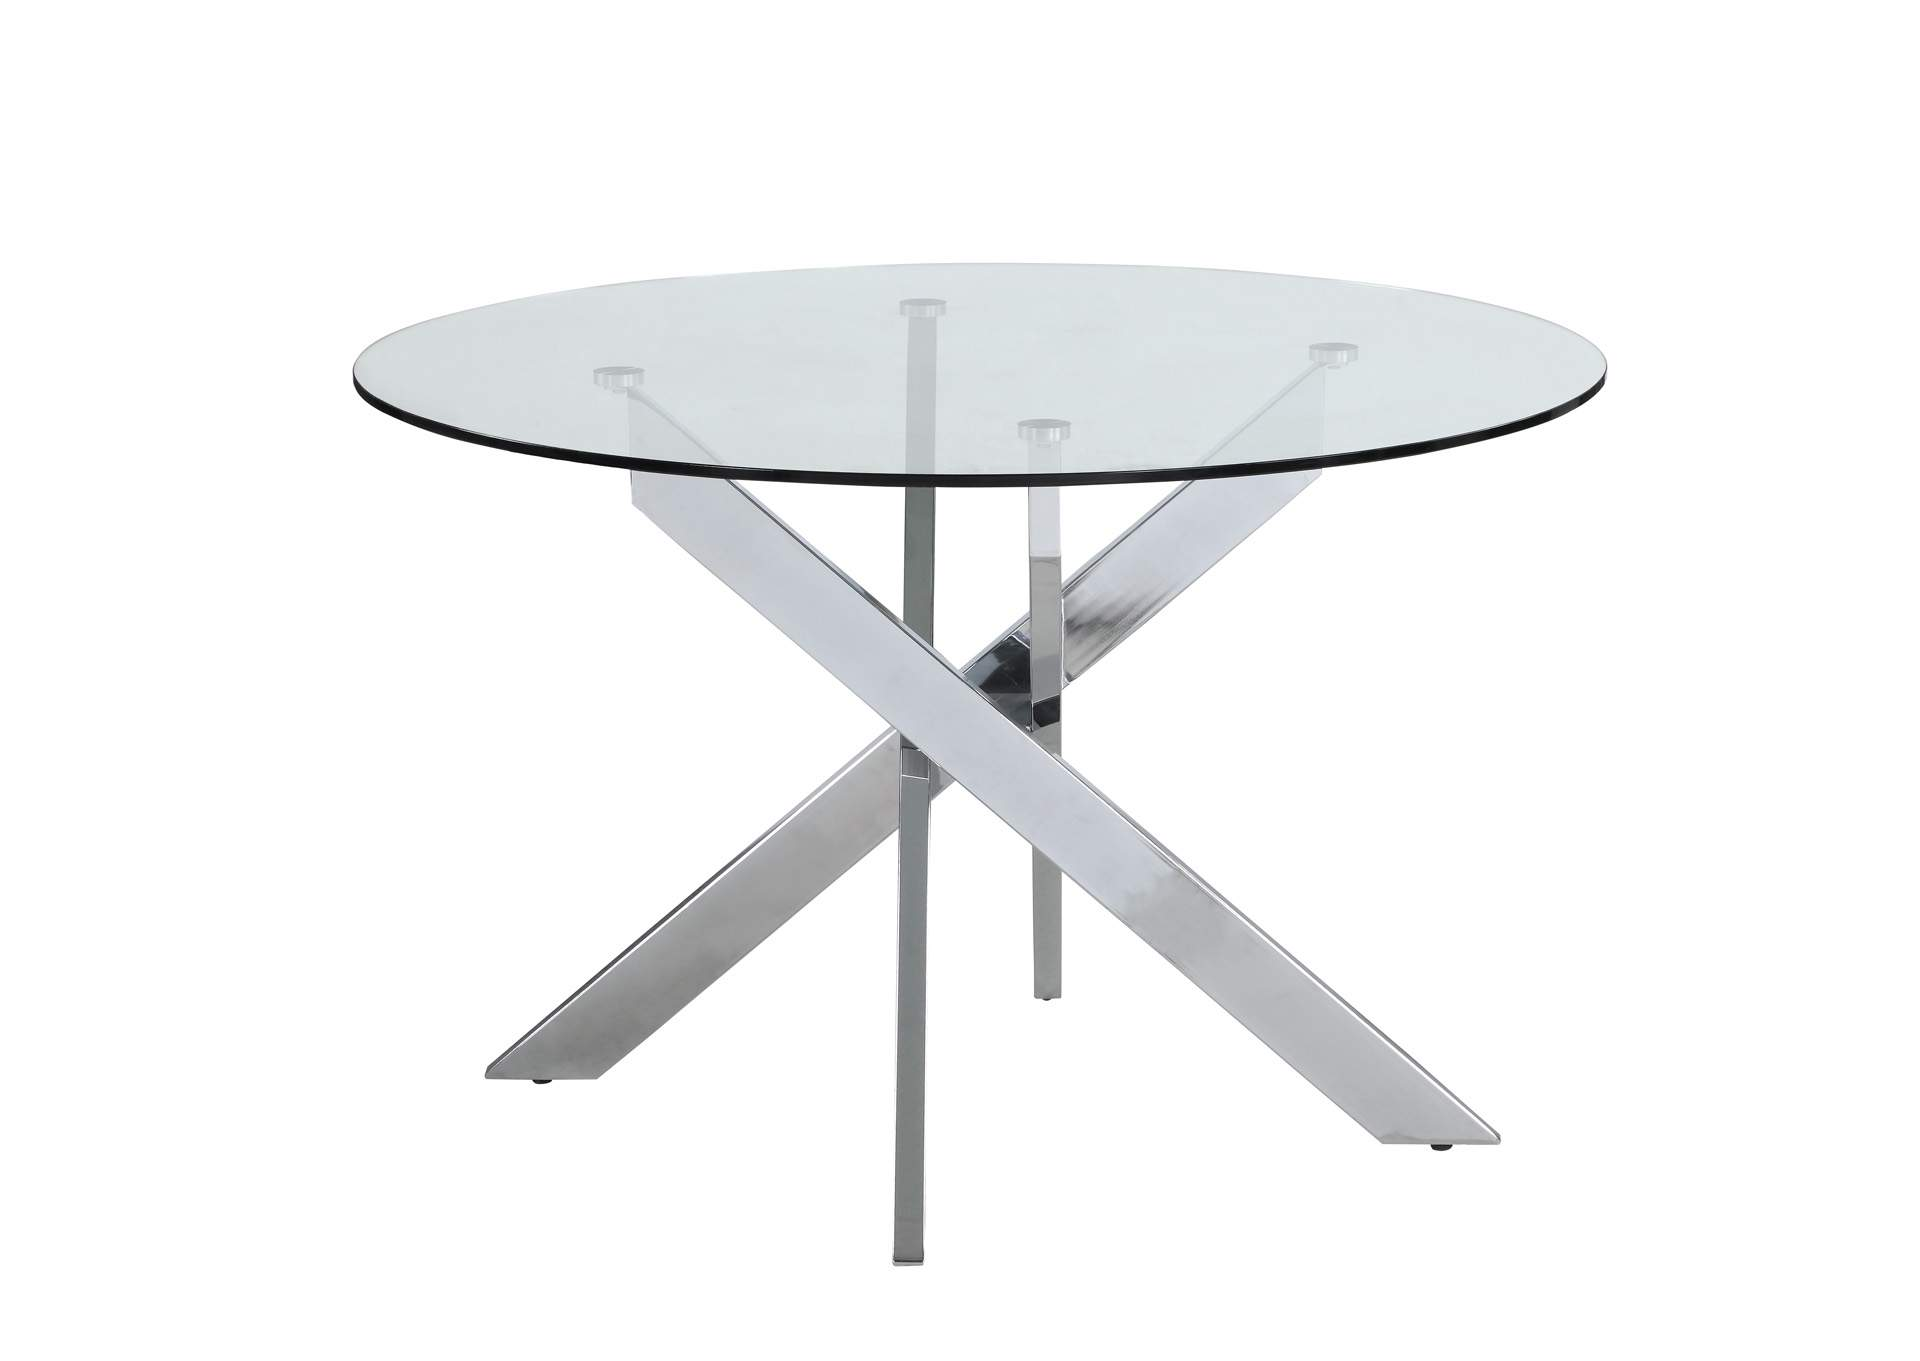 Dusty Chrome Round Glass Top Dining Table,Chintaly Imports